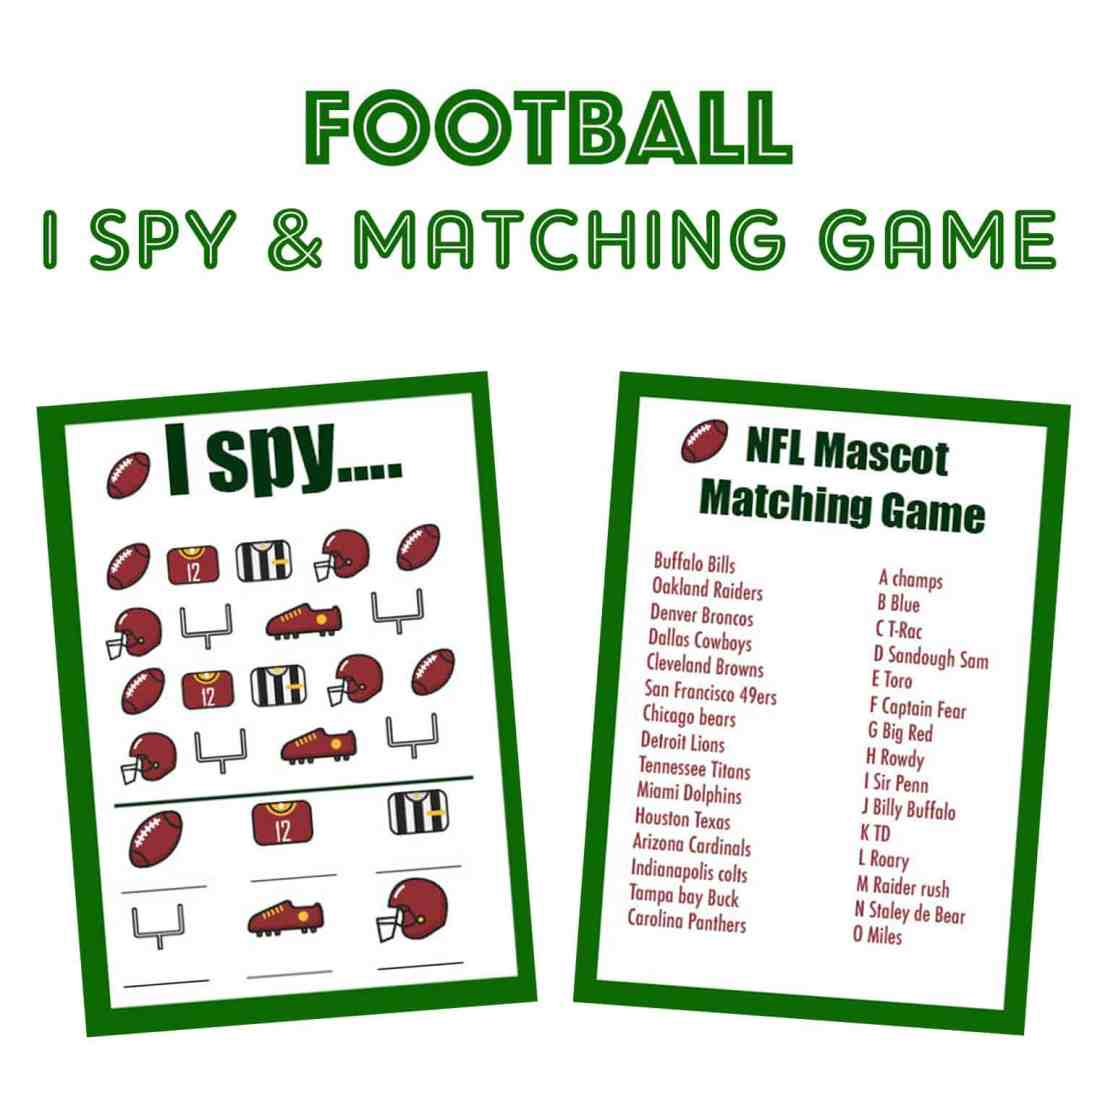 Football I Spy and NHL Mascot Matching Game